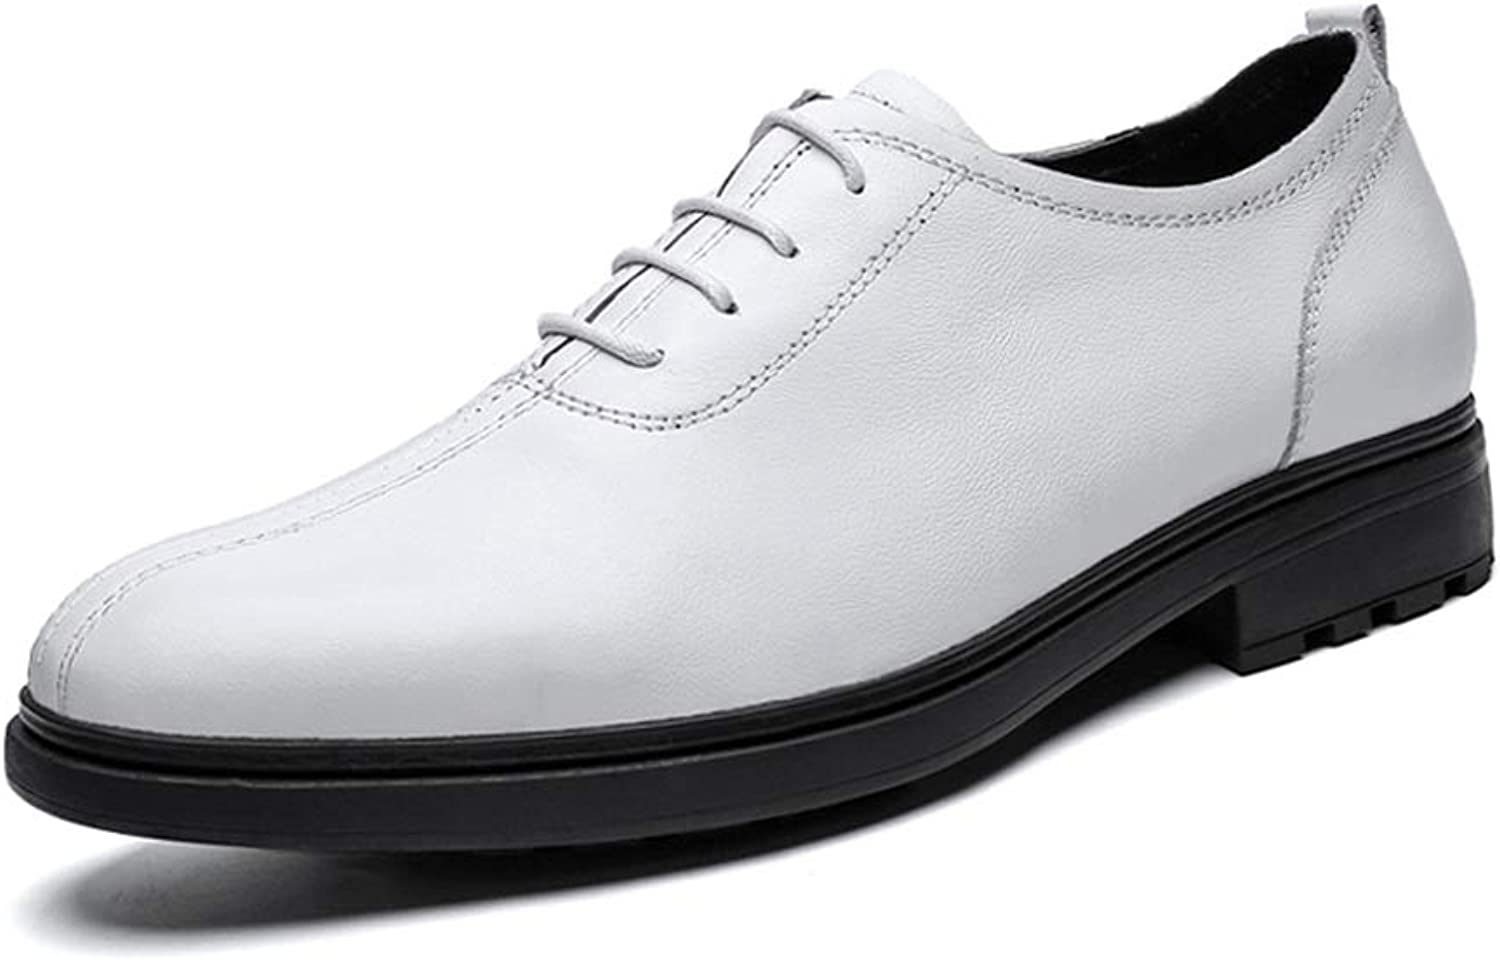 Easy Go Shopping Formal shoes For Men Lace Up Style Oxford shoes OX Leather Round Toe Classic Casual British Style Cricket shoes (color   White, Size   6 UK)